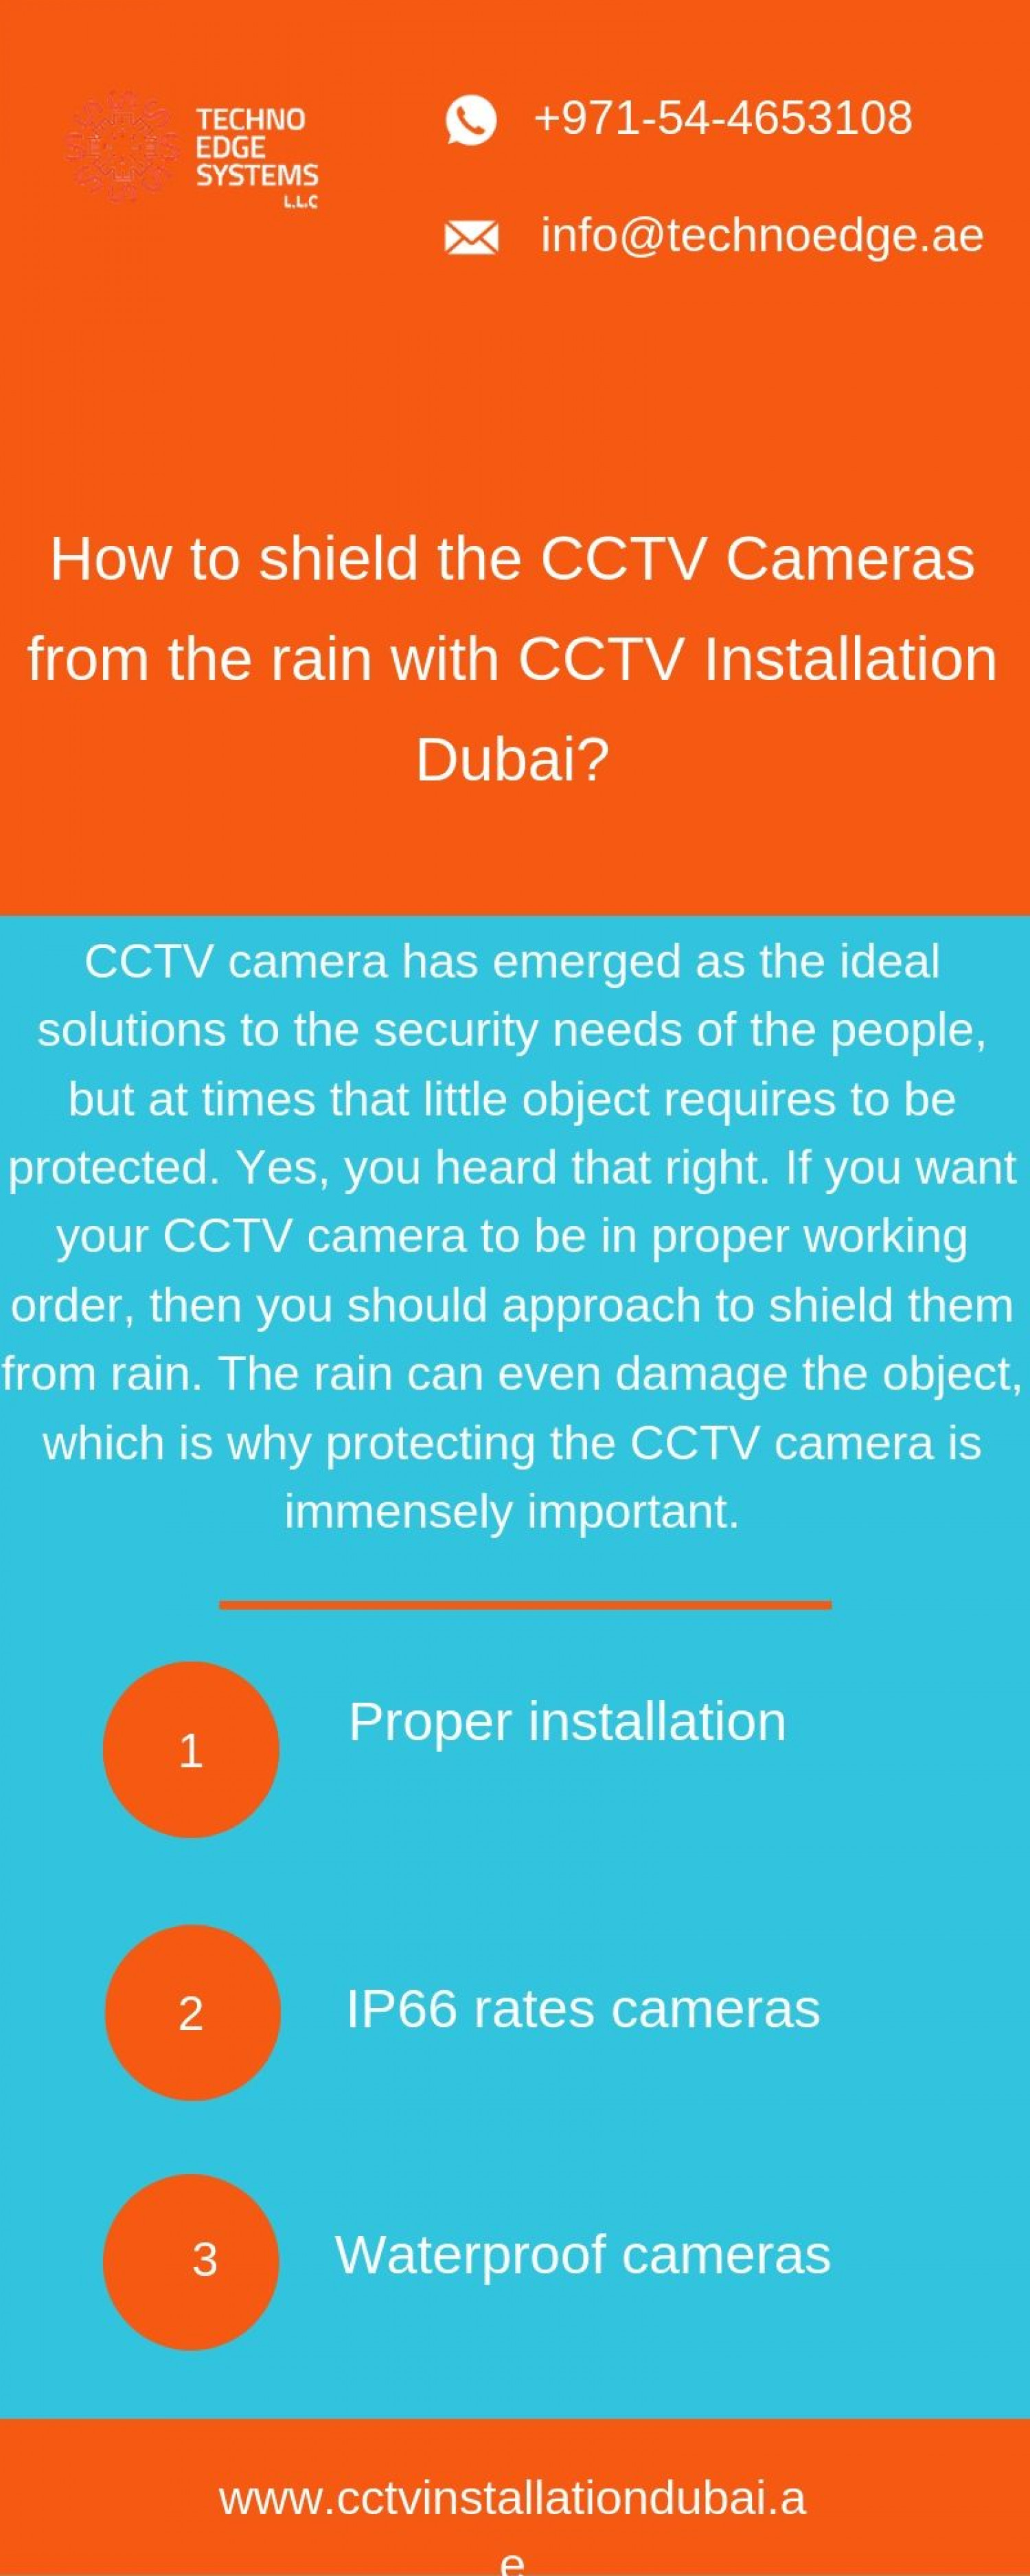 How to shield the CCTV cameras from the rain with CCTV Installation Dubai? Infographic